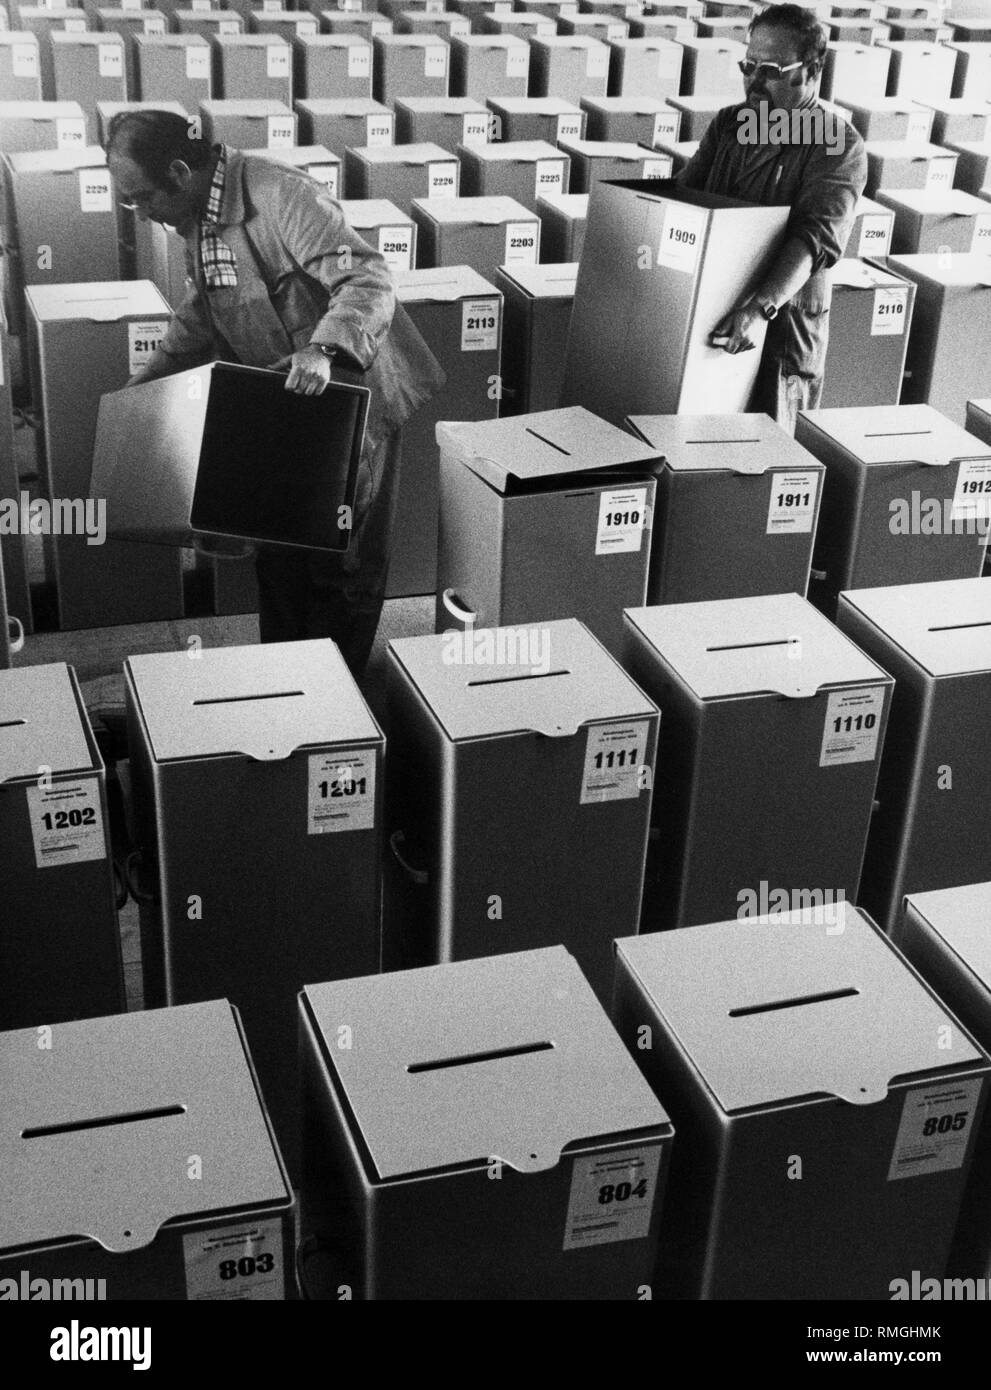 Ballot boxes, as here in the Munich electoral office, are being prepared for use in the federal elections on 5 October in all federal states. - Stock Image